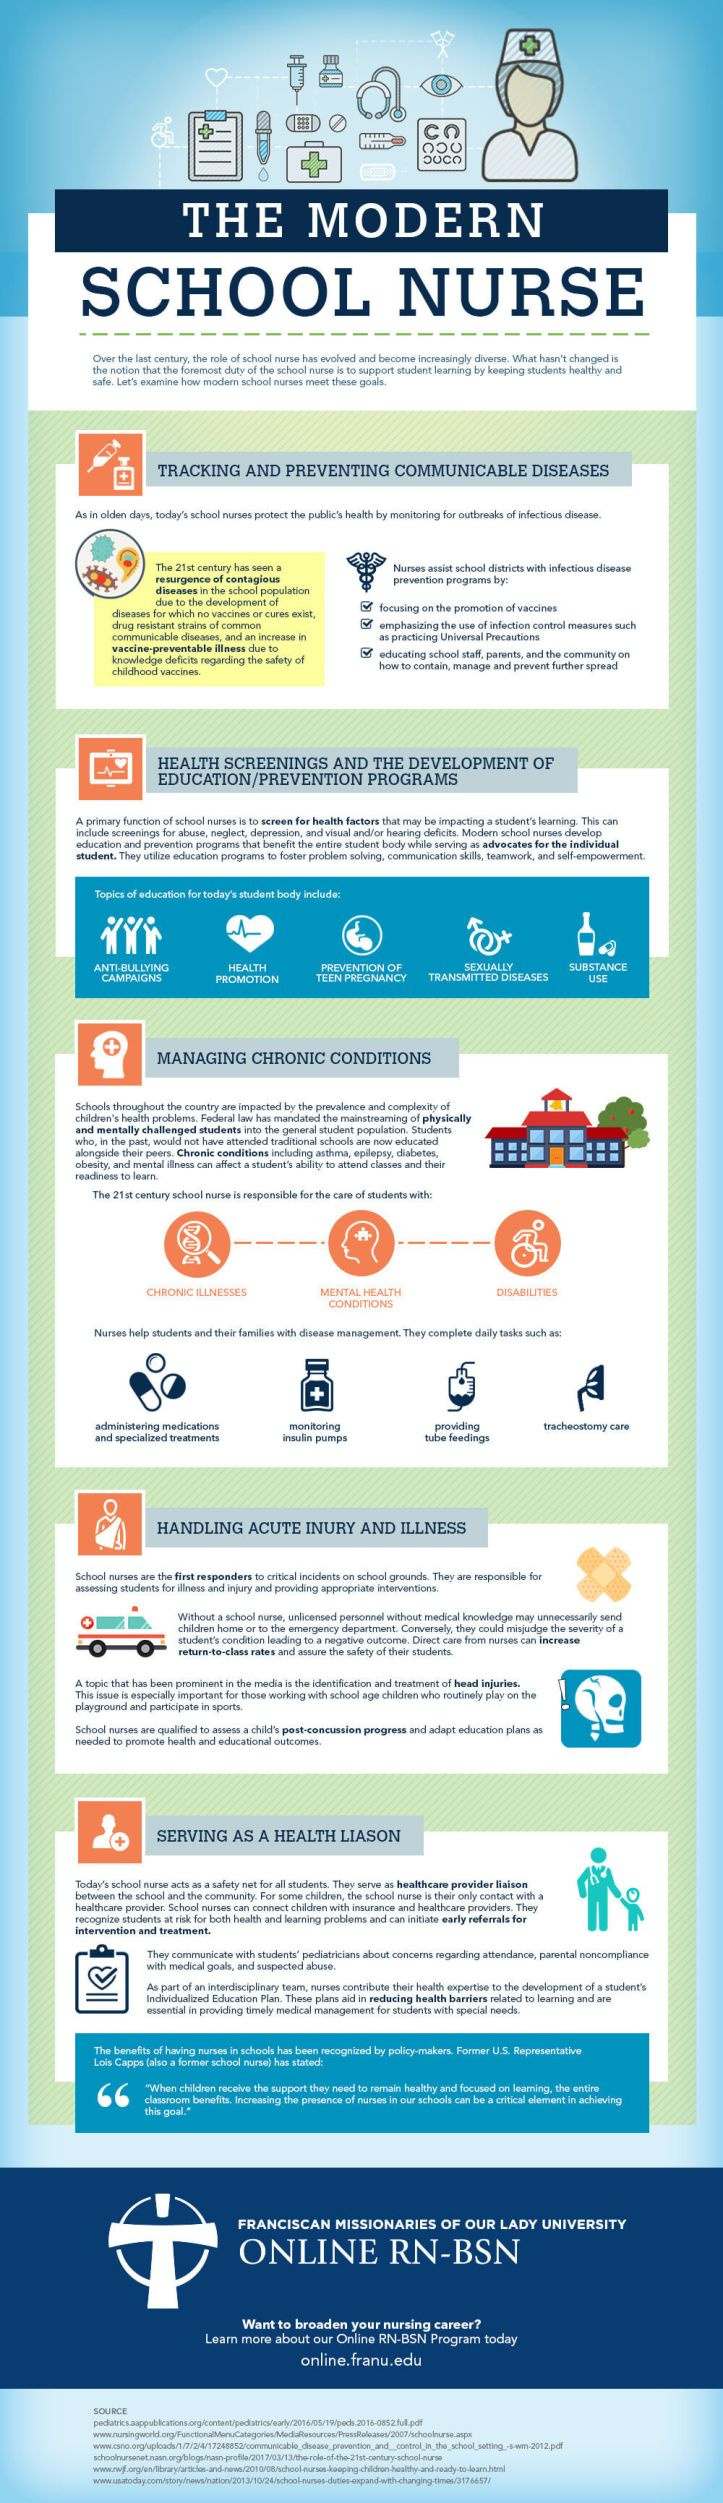 Modern School Nurse Infographic